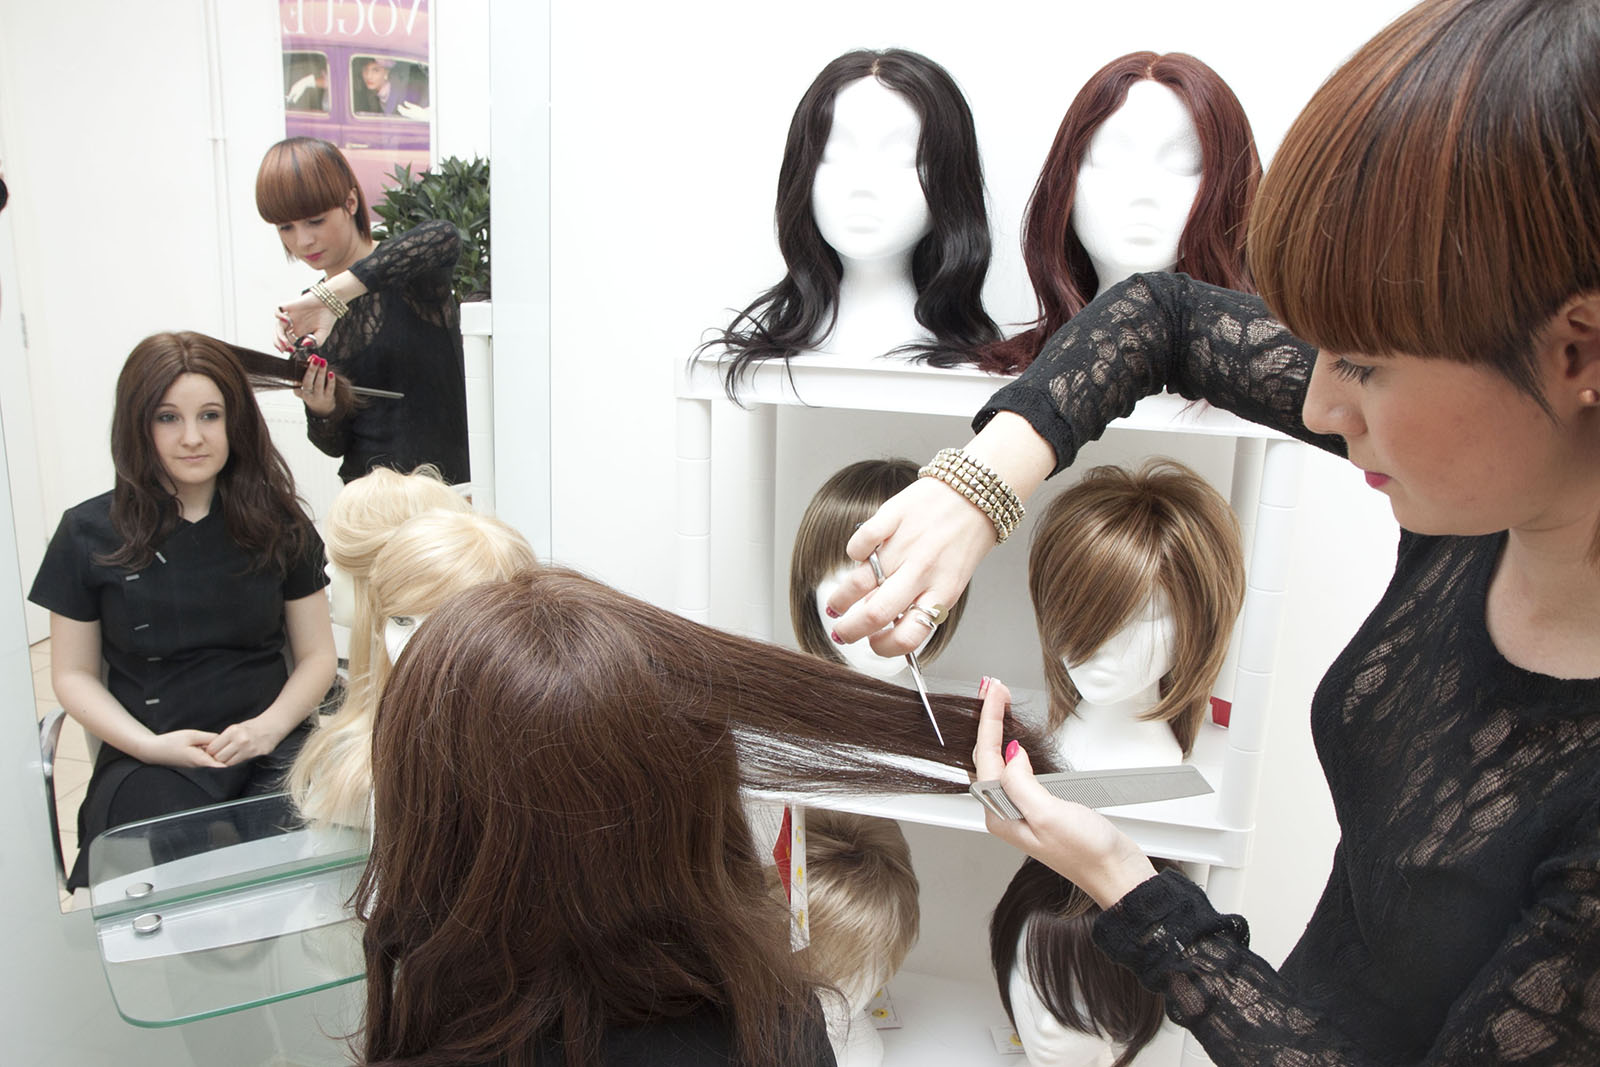 chennai hair school courses michael boychuck online hair academy chennai hair artist courses